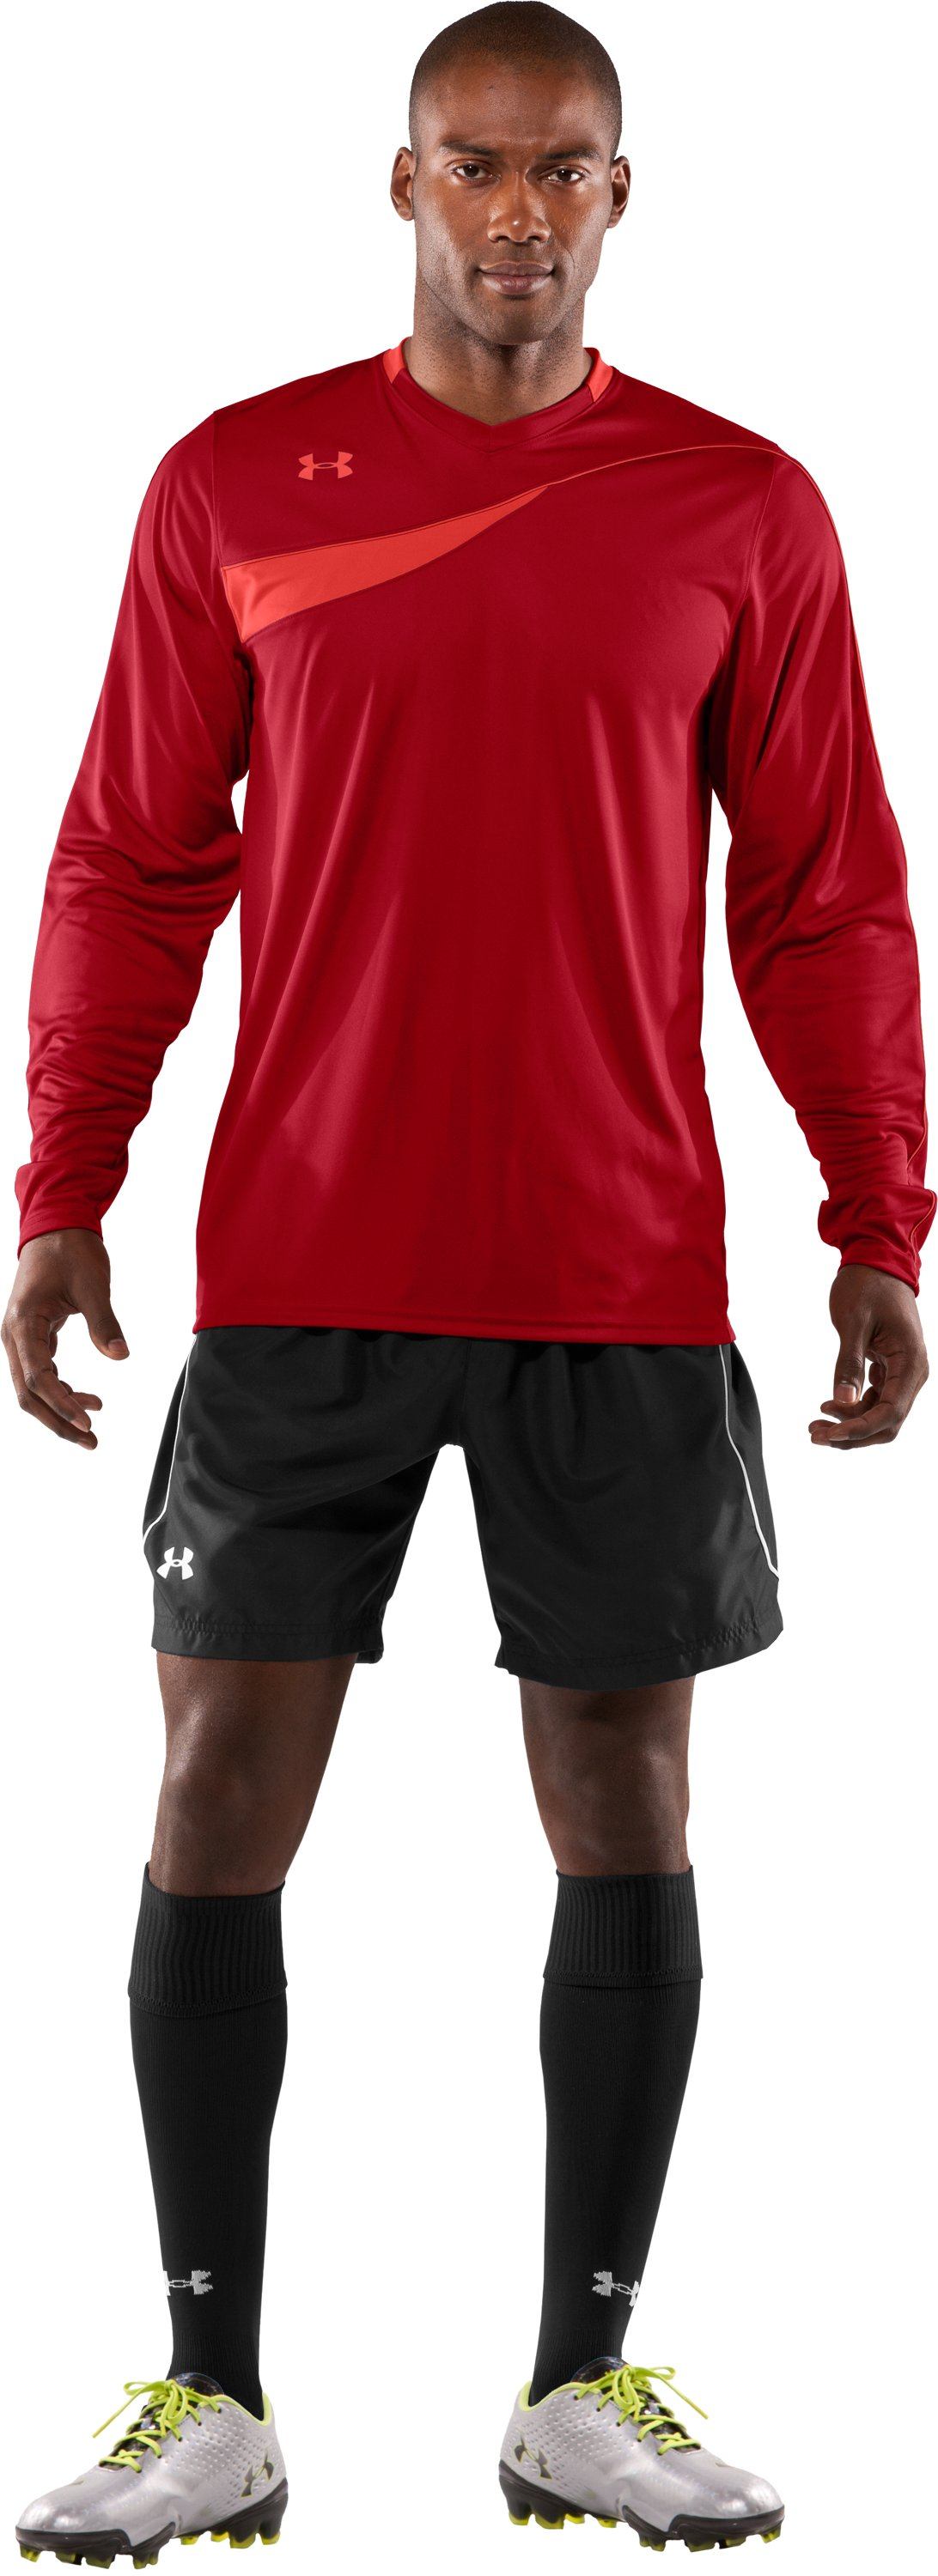 Men's UA Horizontal Goalkeeper Jersey, Fraternity, Front